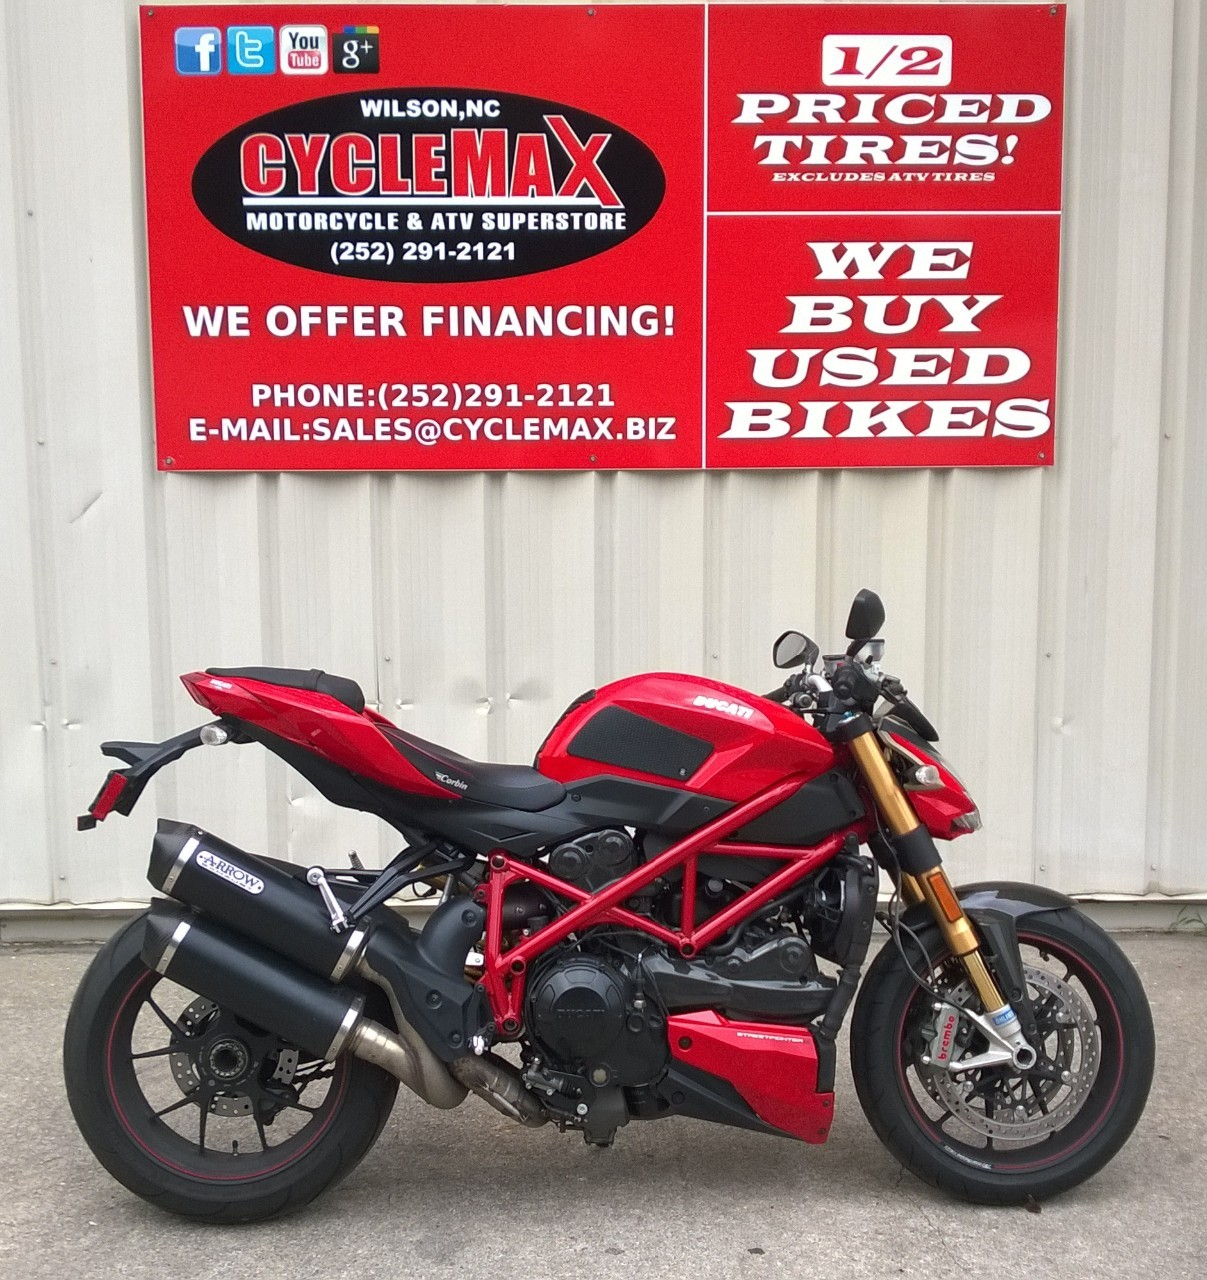 2012 Ducati STREETFIGHTER S, motorcycle listing